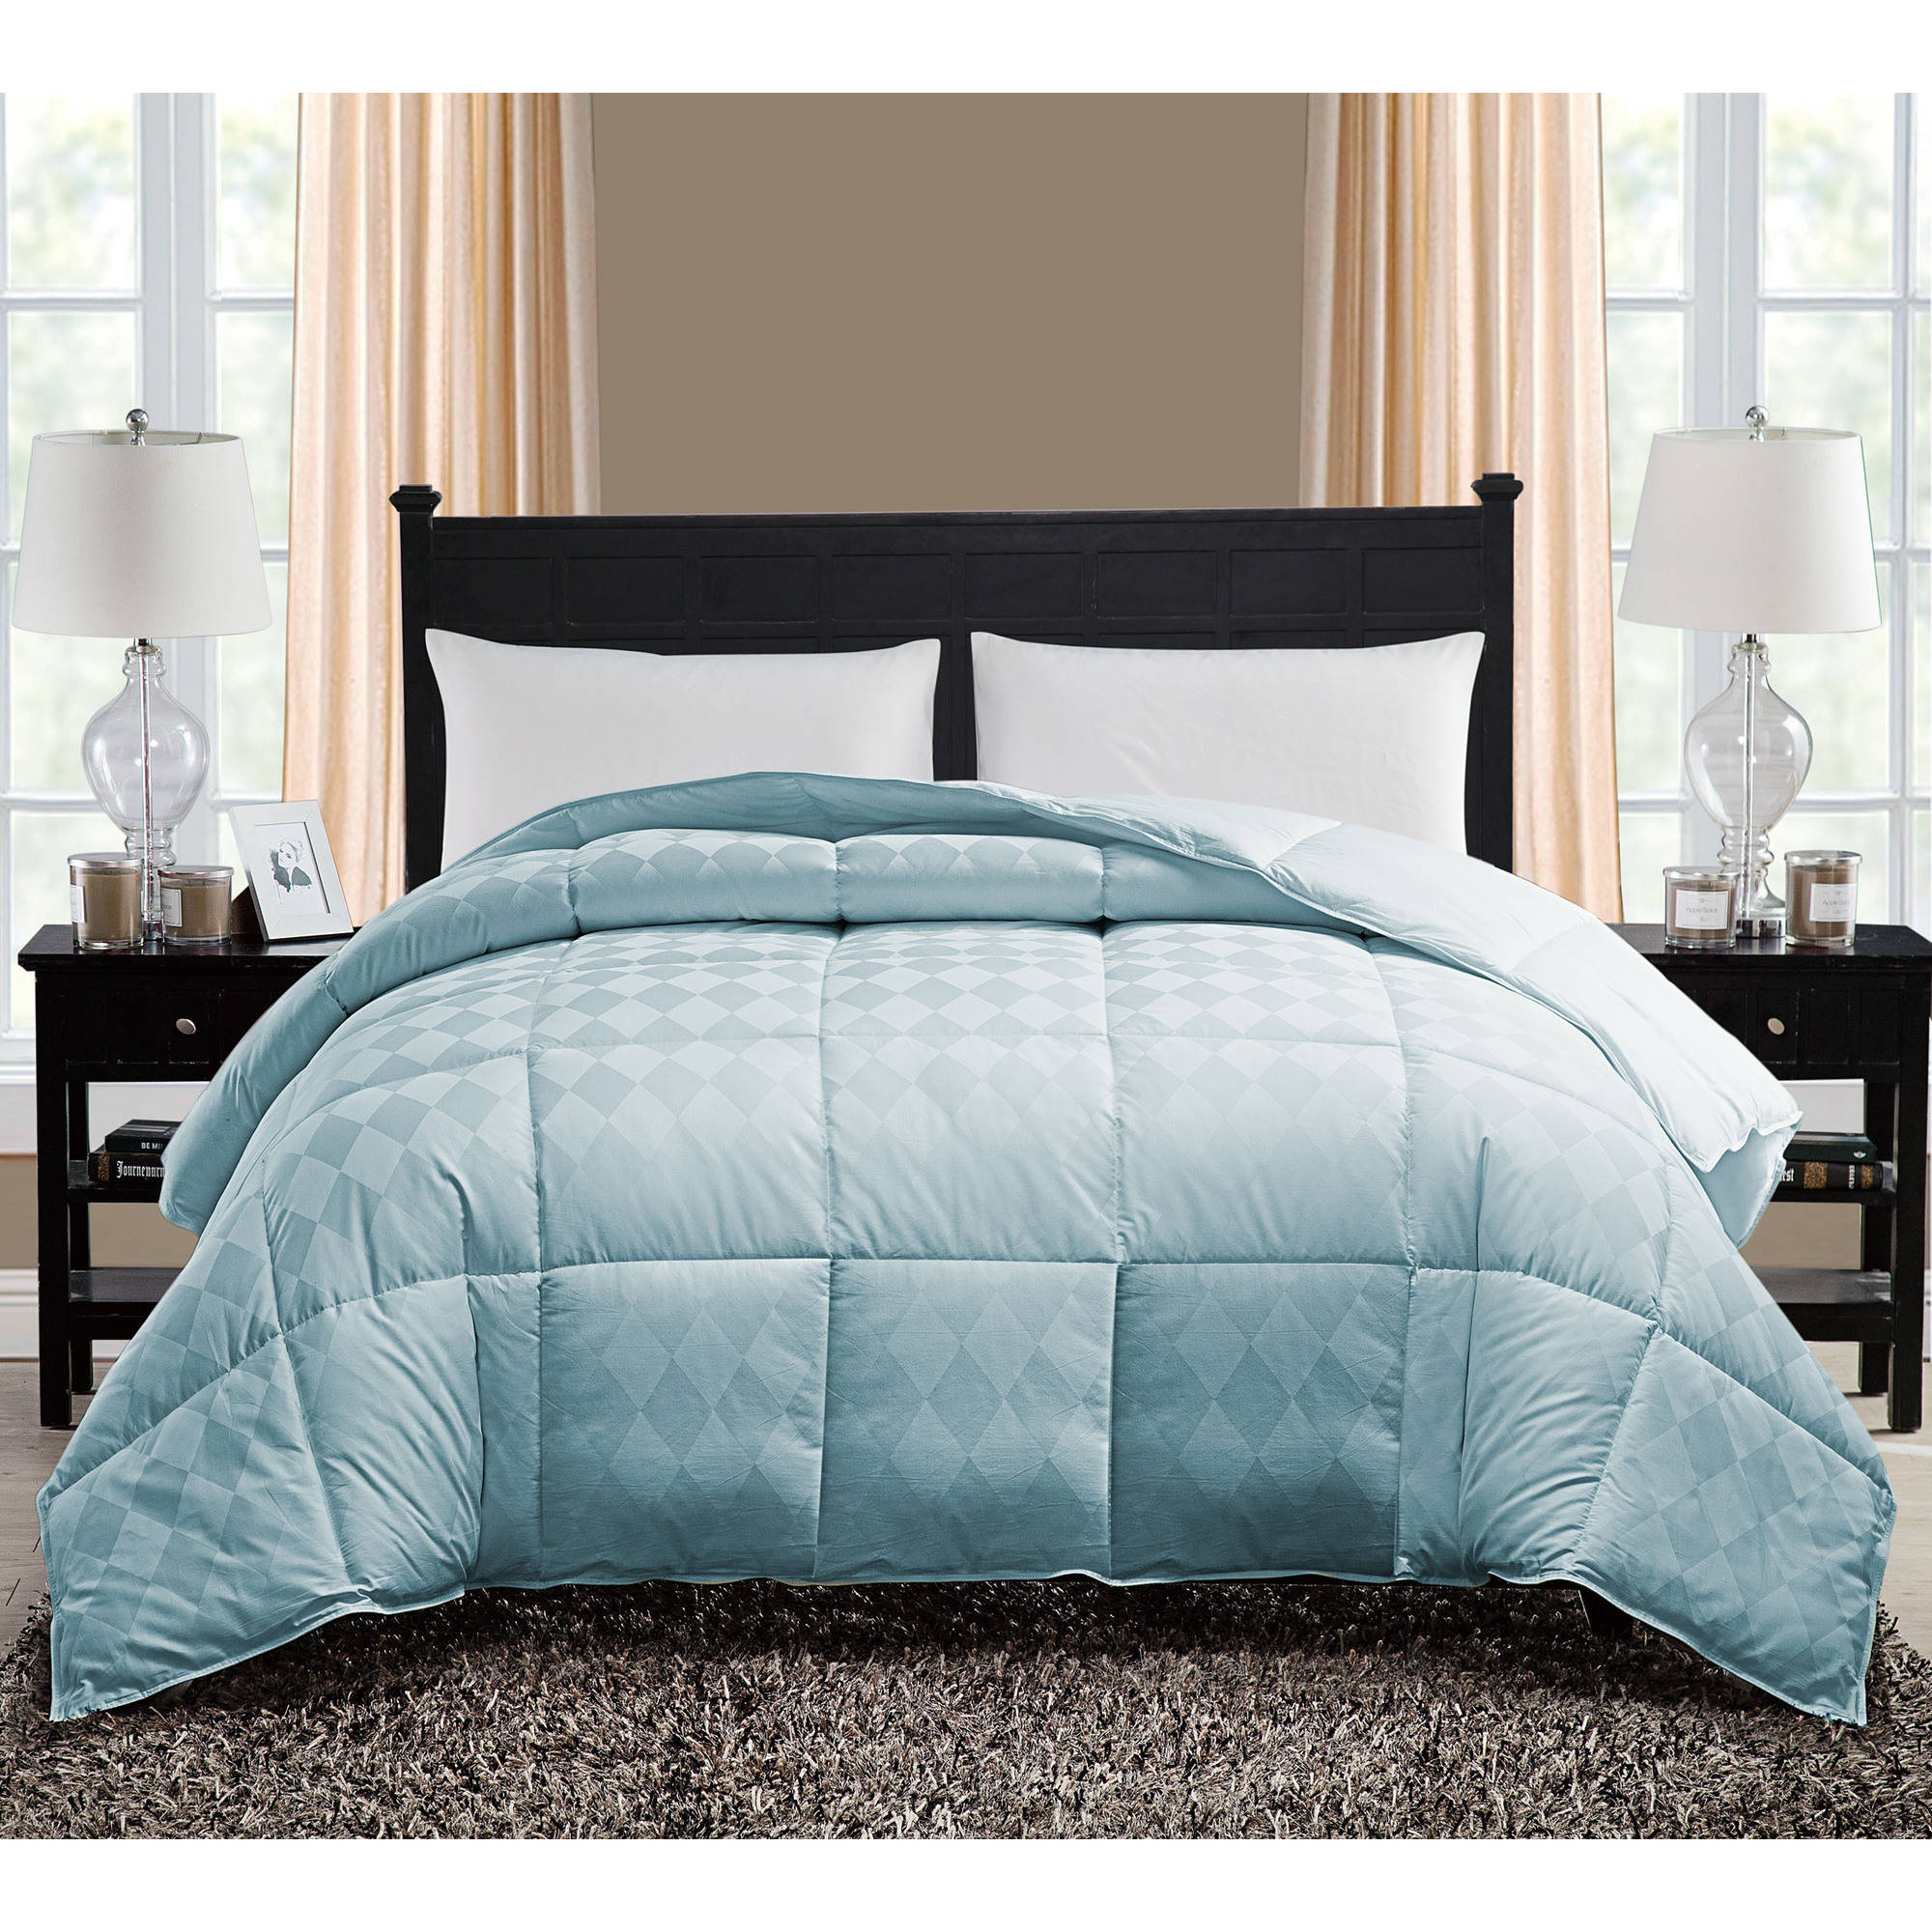 VCNY Home Diamond Down Alternative Bedding Comforter, Multiple Colors